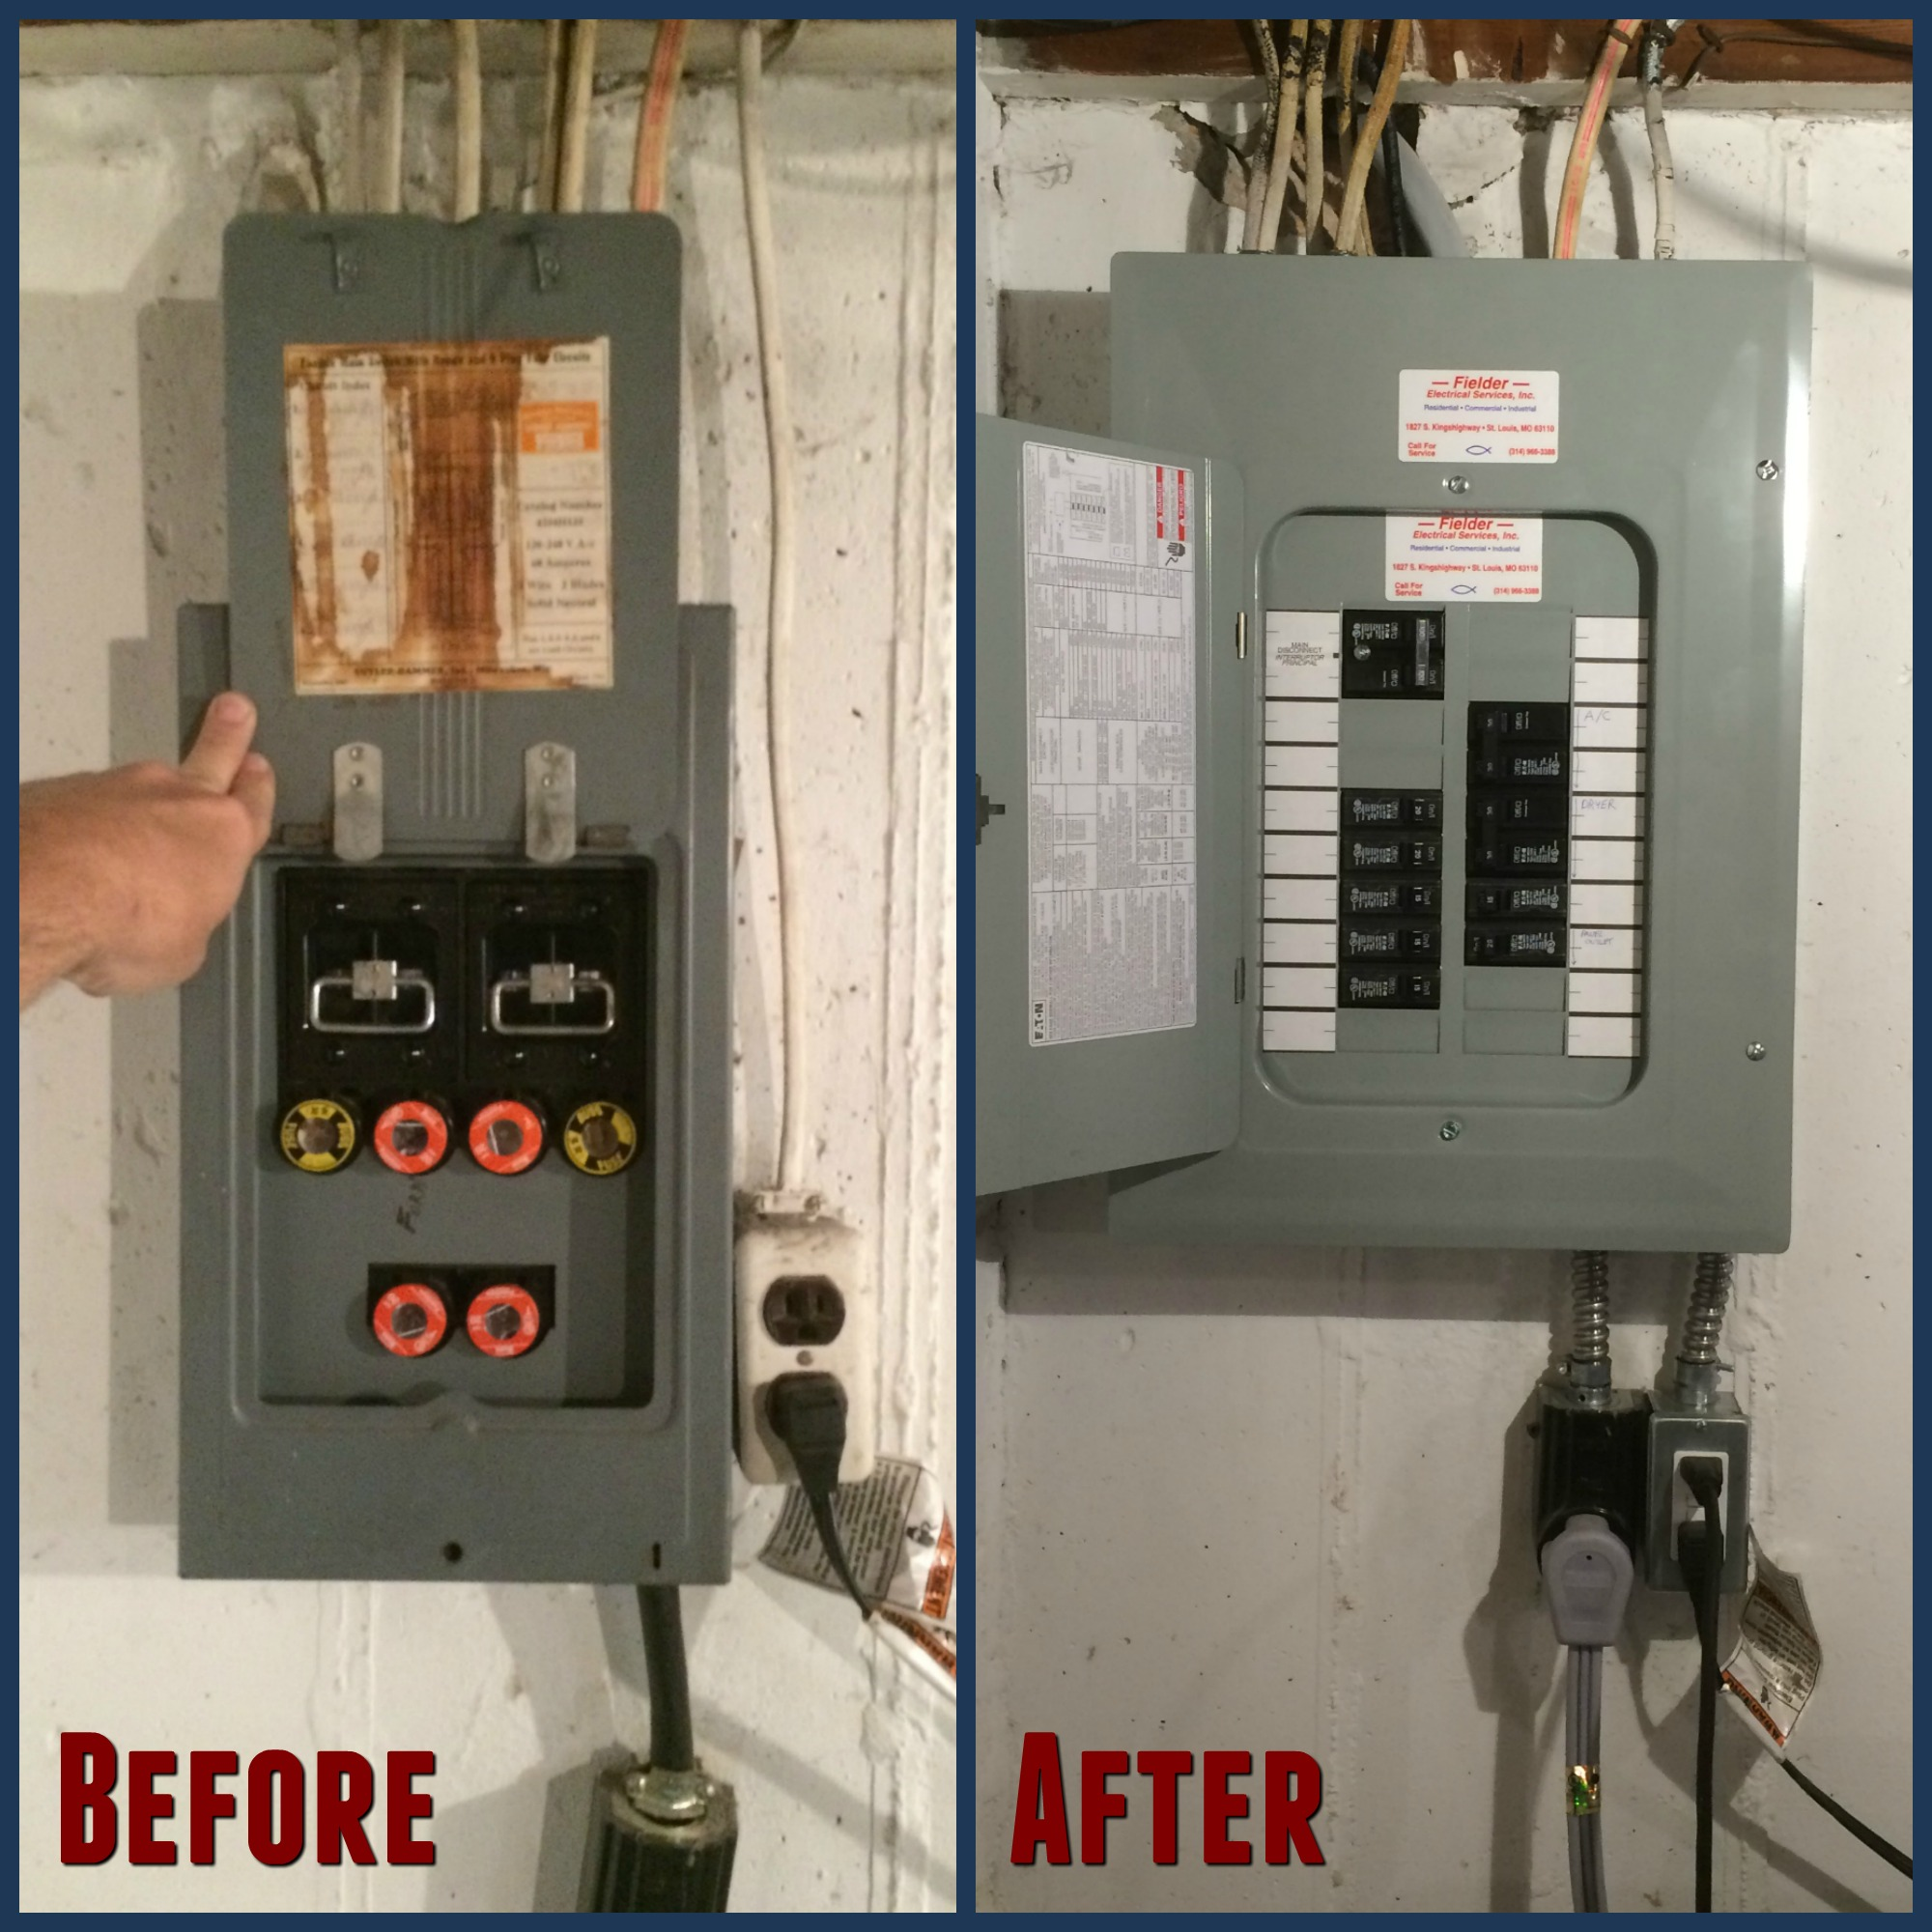 electrical panels fielder electrical services rh fielderelectricalservices com fuse box vs breaker fuse in breaker box wont reset